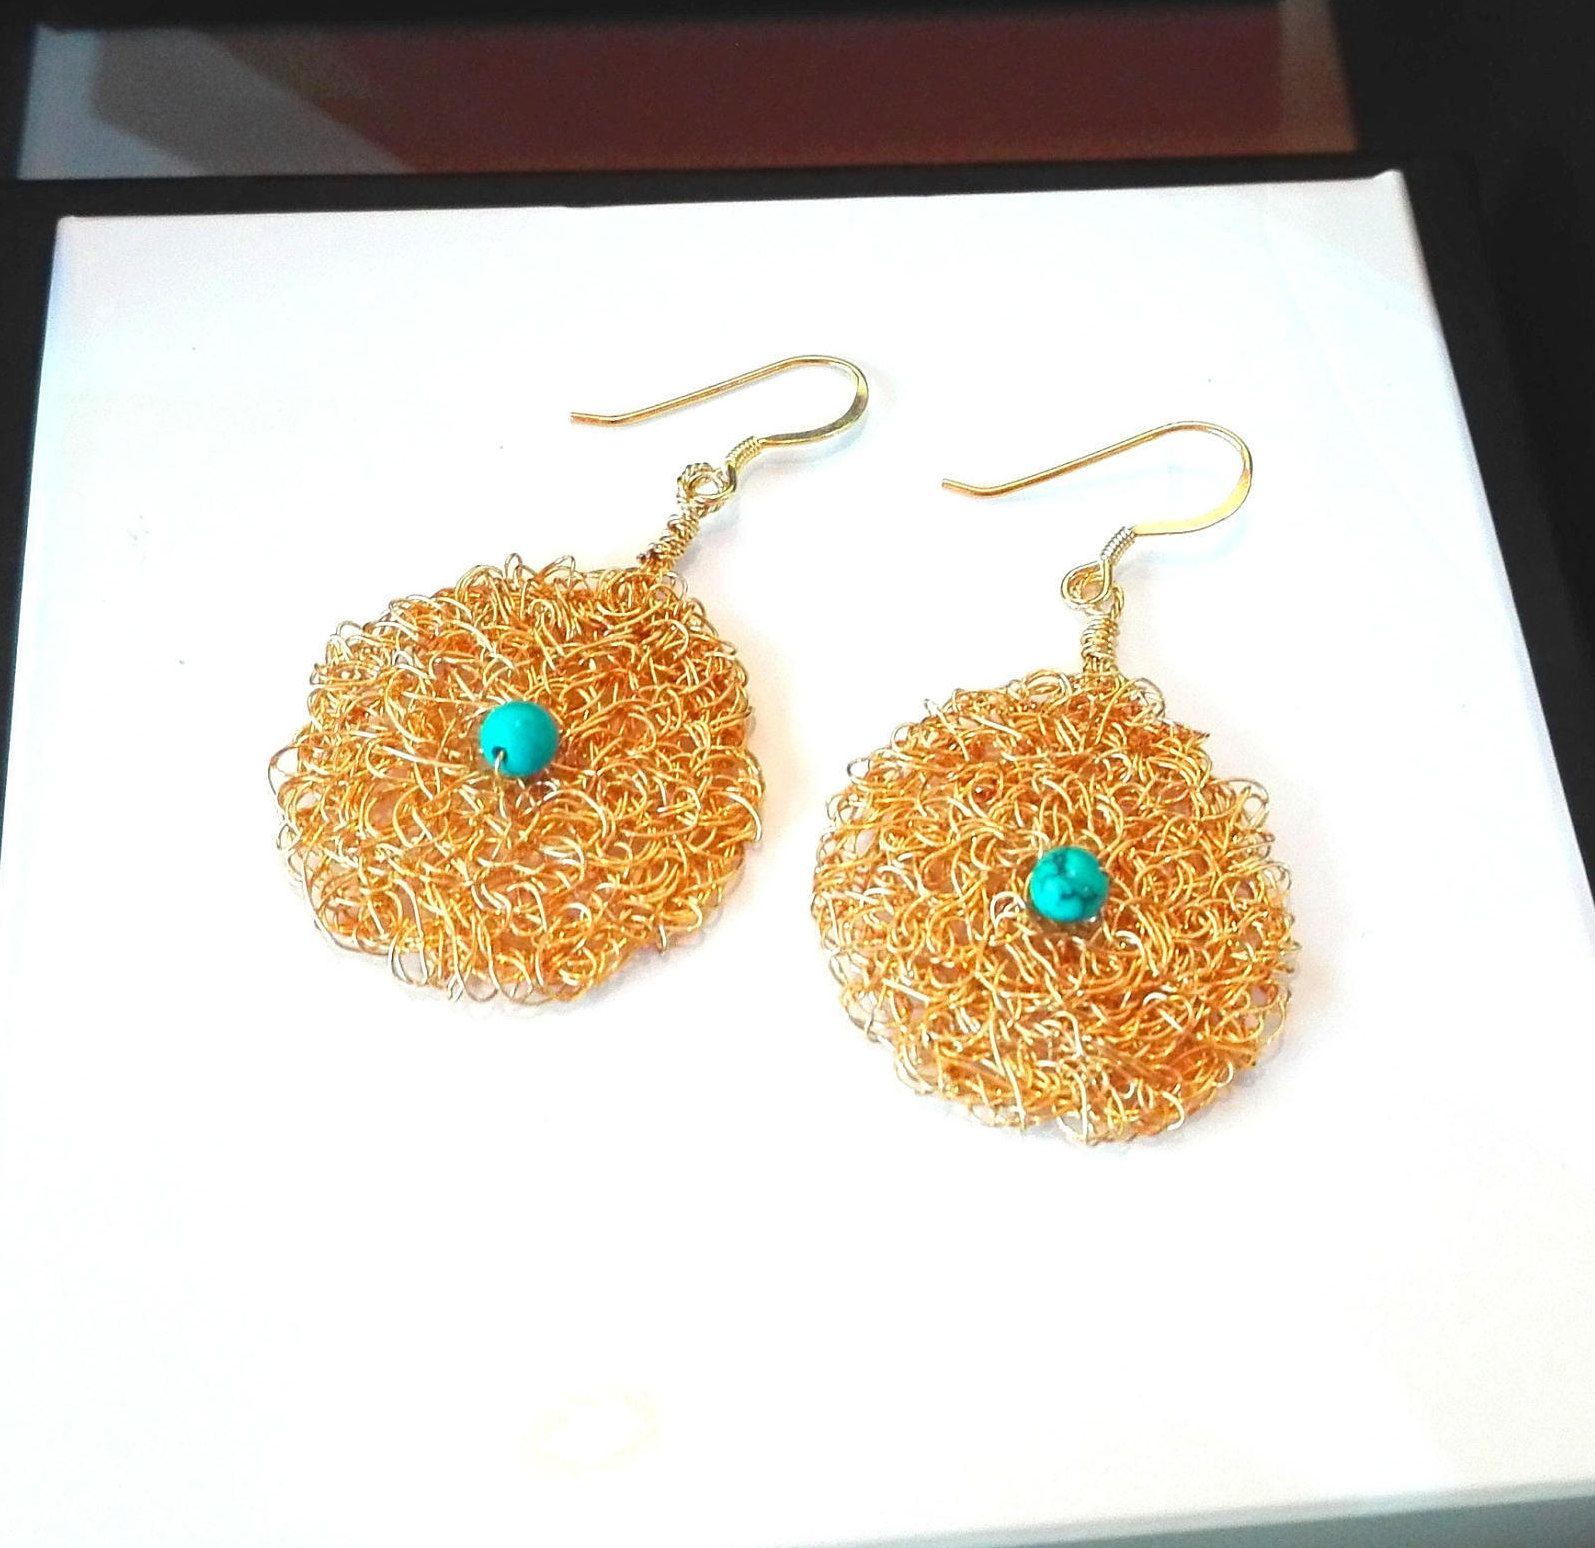 HANDMADE EARRINGS TURQUOISE Byzantine Knitted Goldplated bf192e786d9